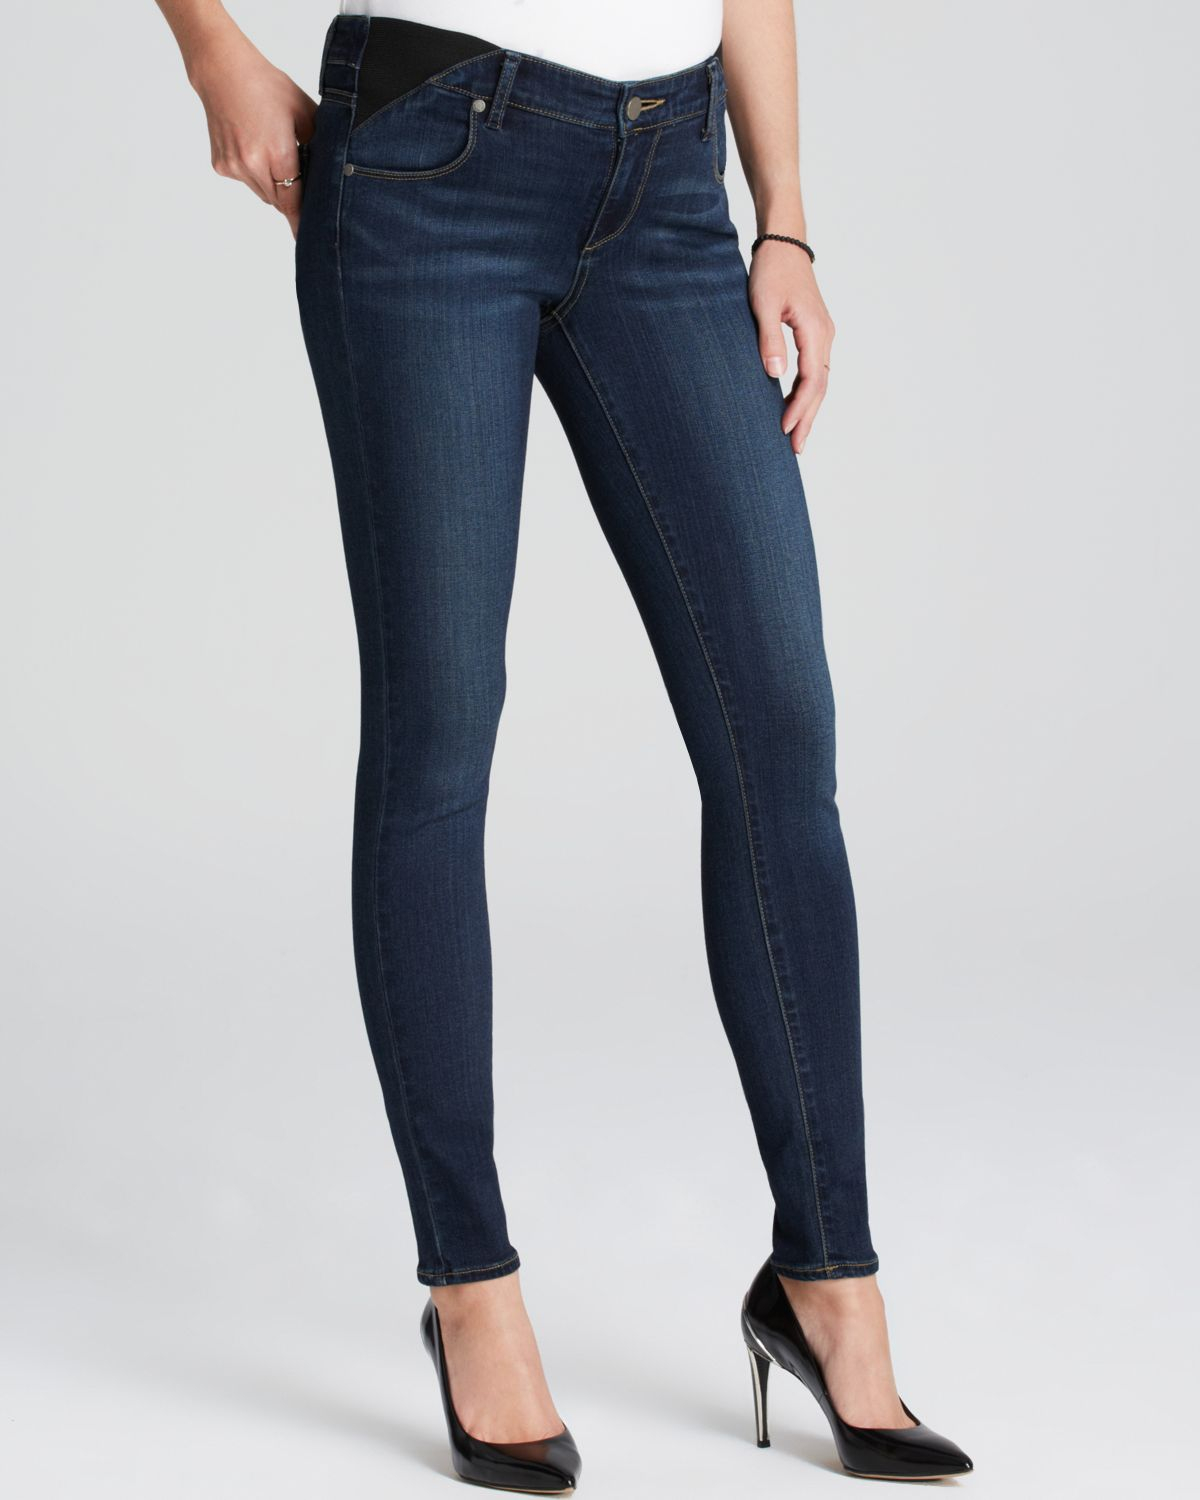 Silver Jeans Maternity - Jeans Am